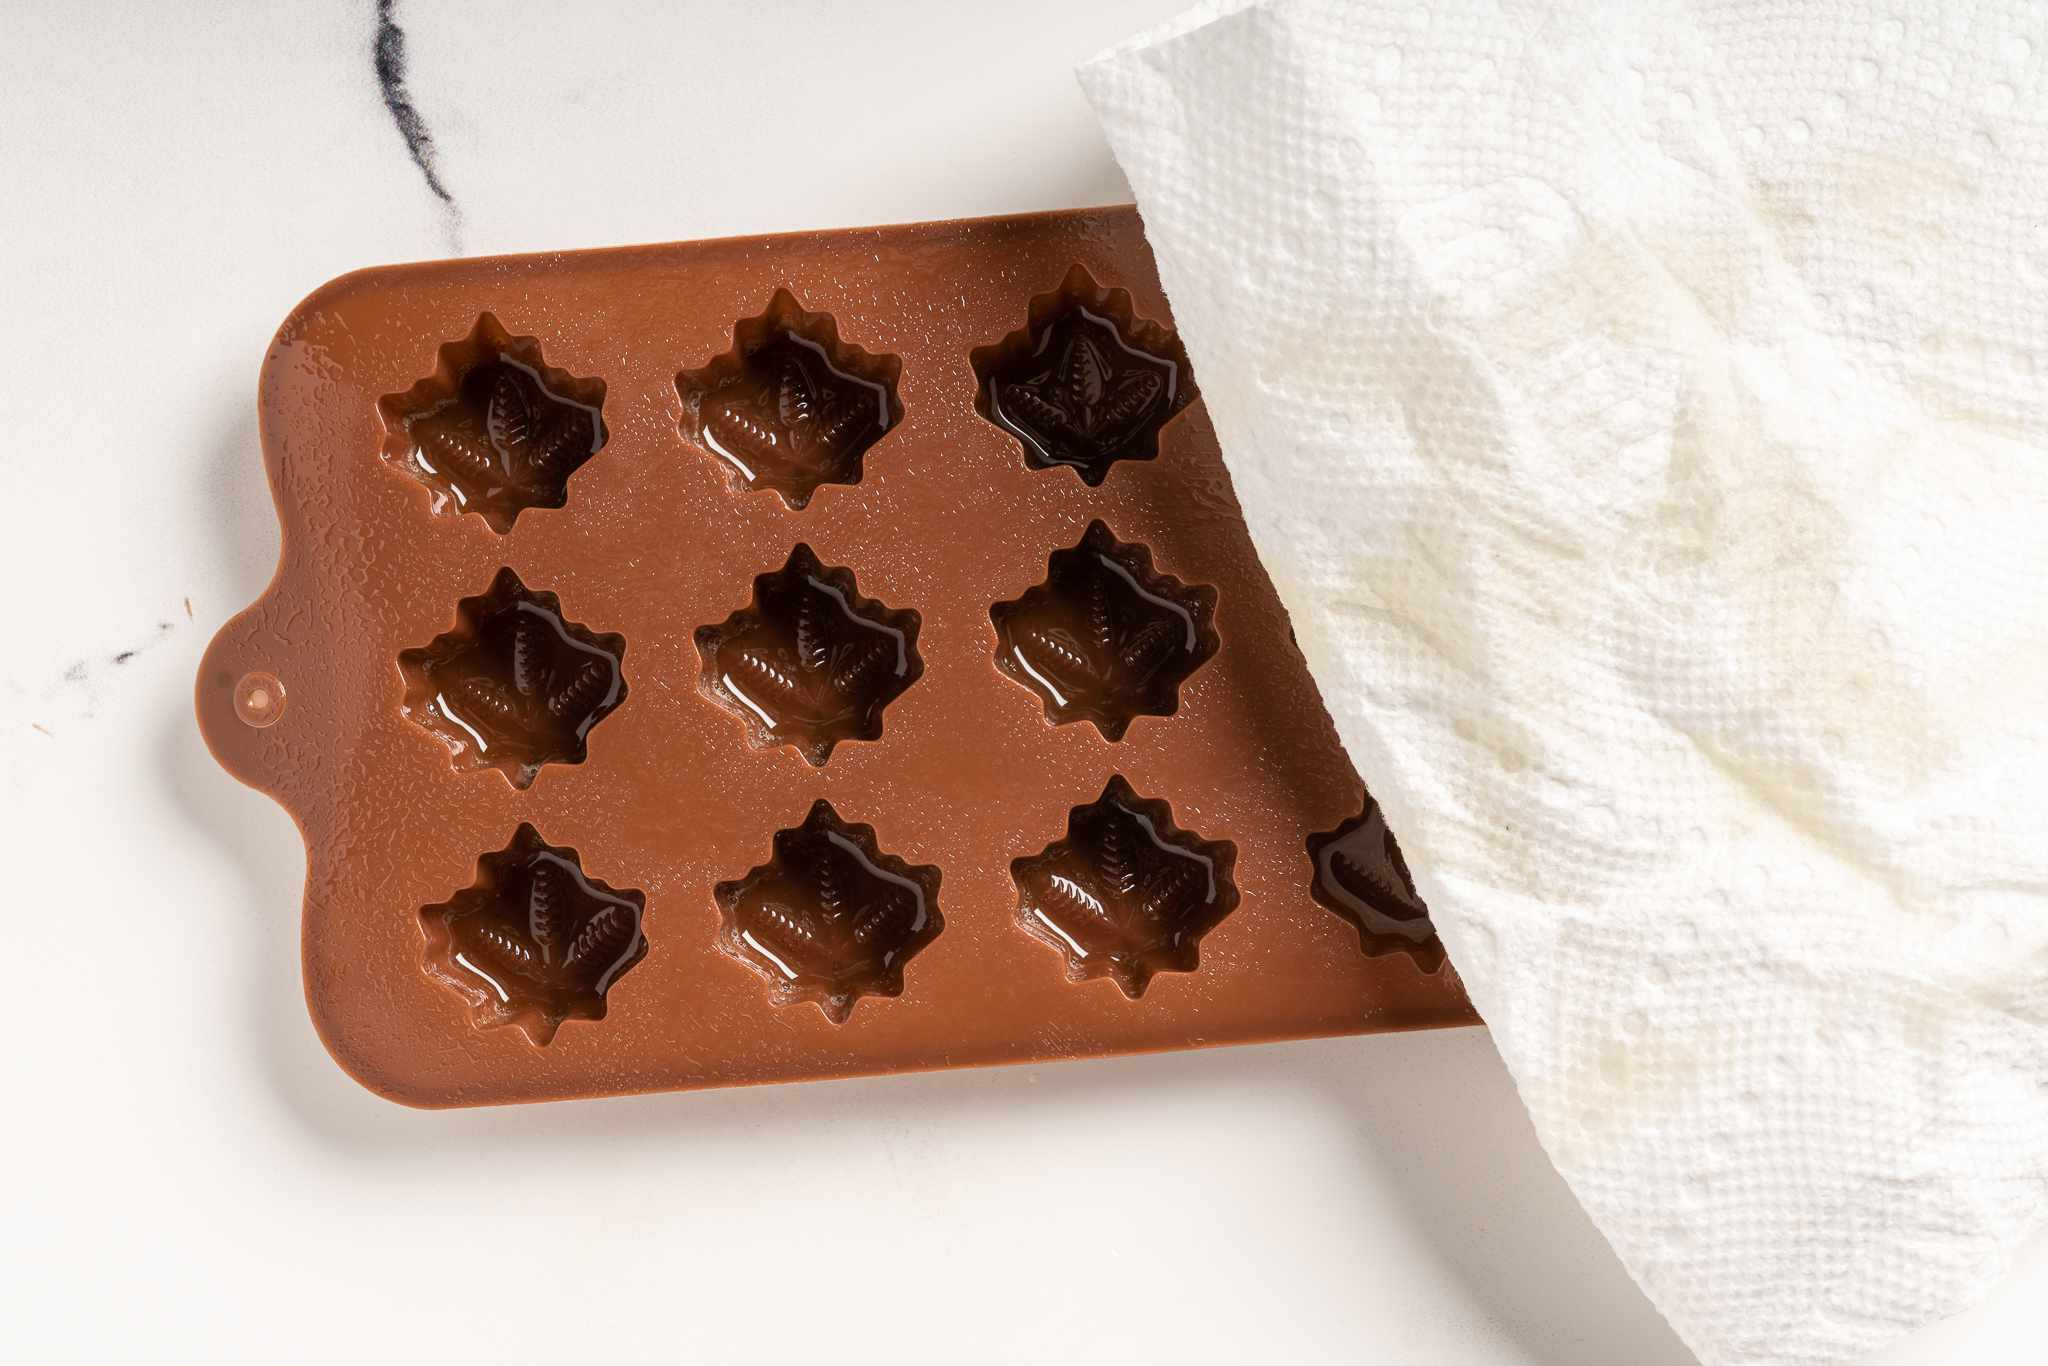 wipe off the extra cooking spray off the candy molds